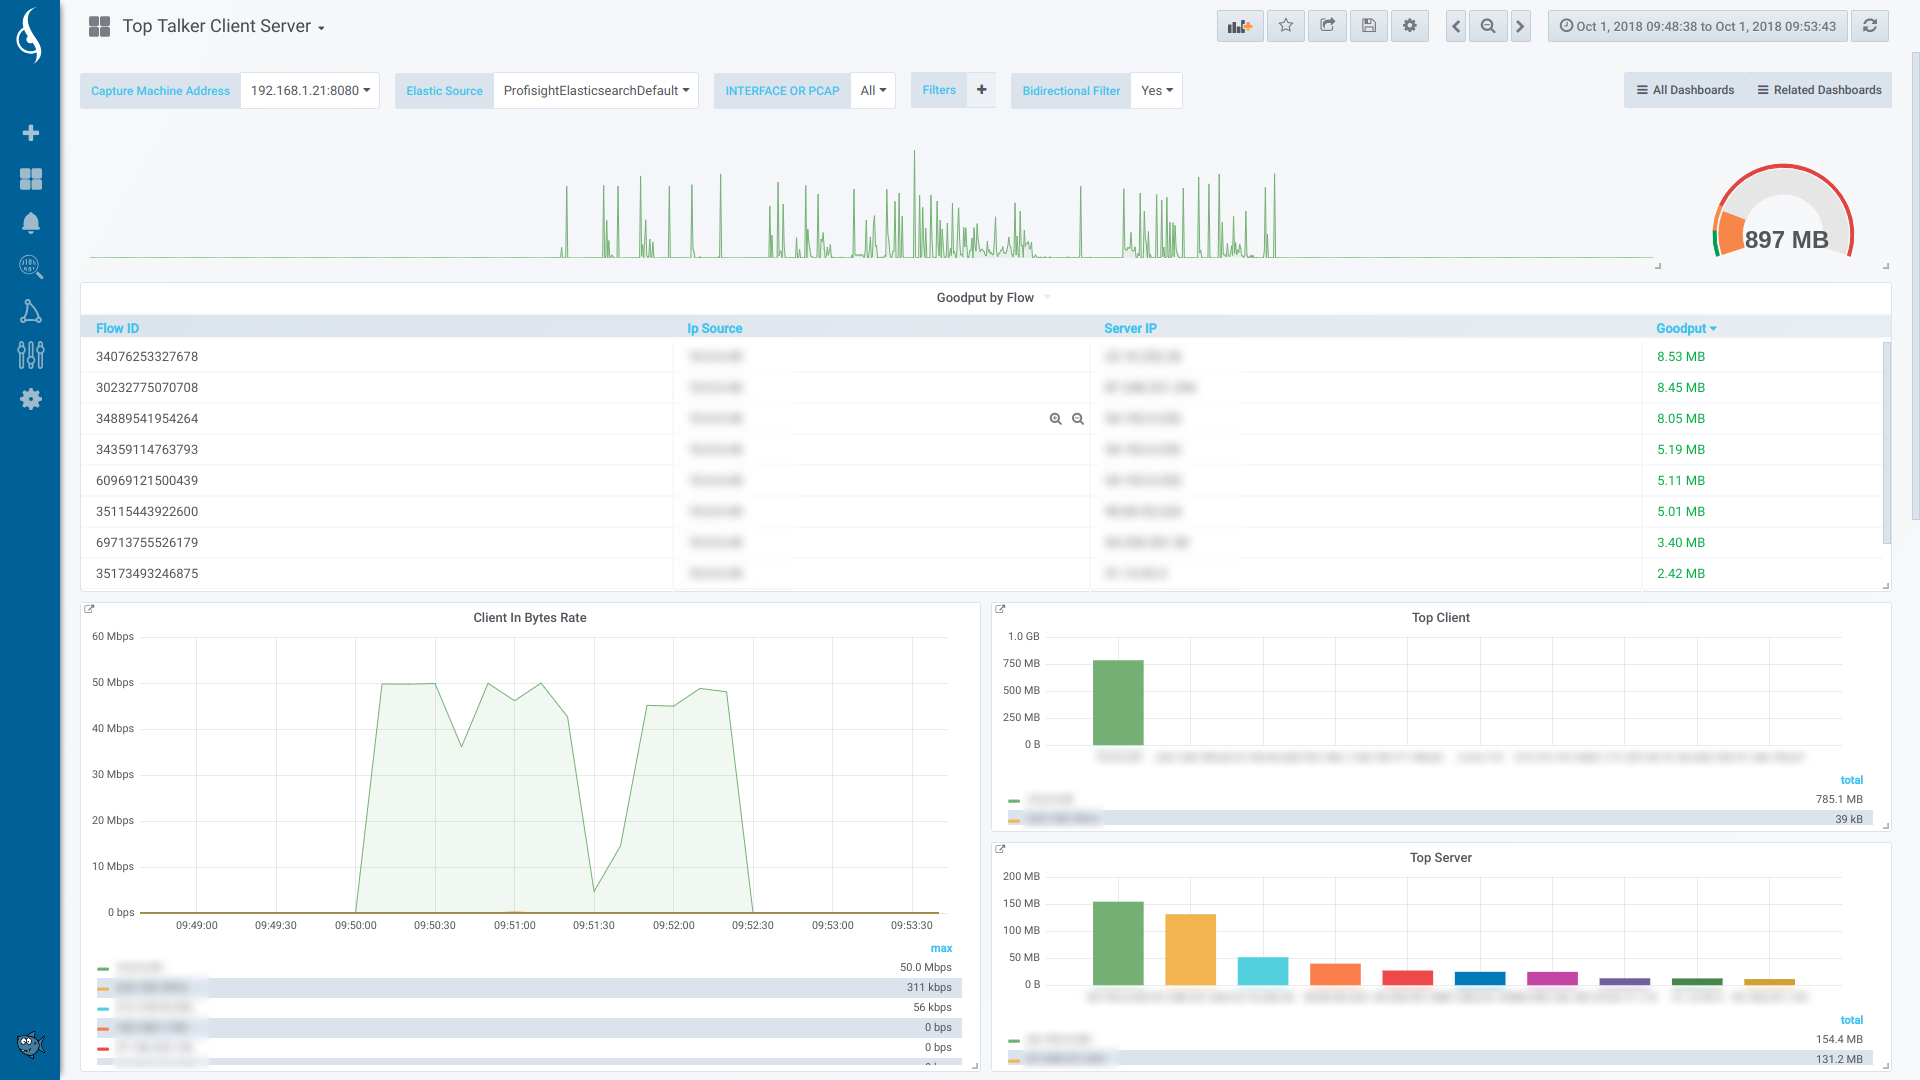 ProfiSight-Dashboards-Hosts-Top-Talkers